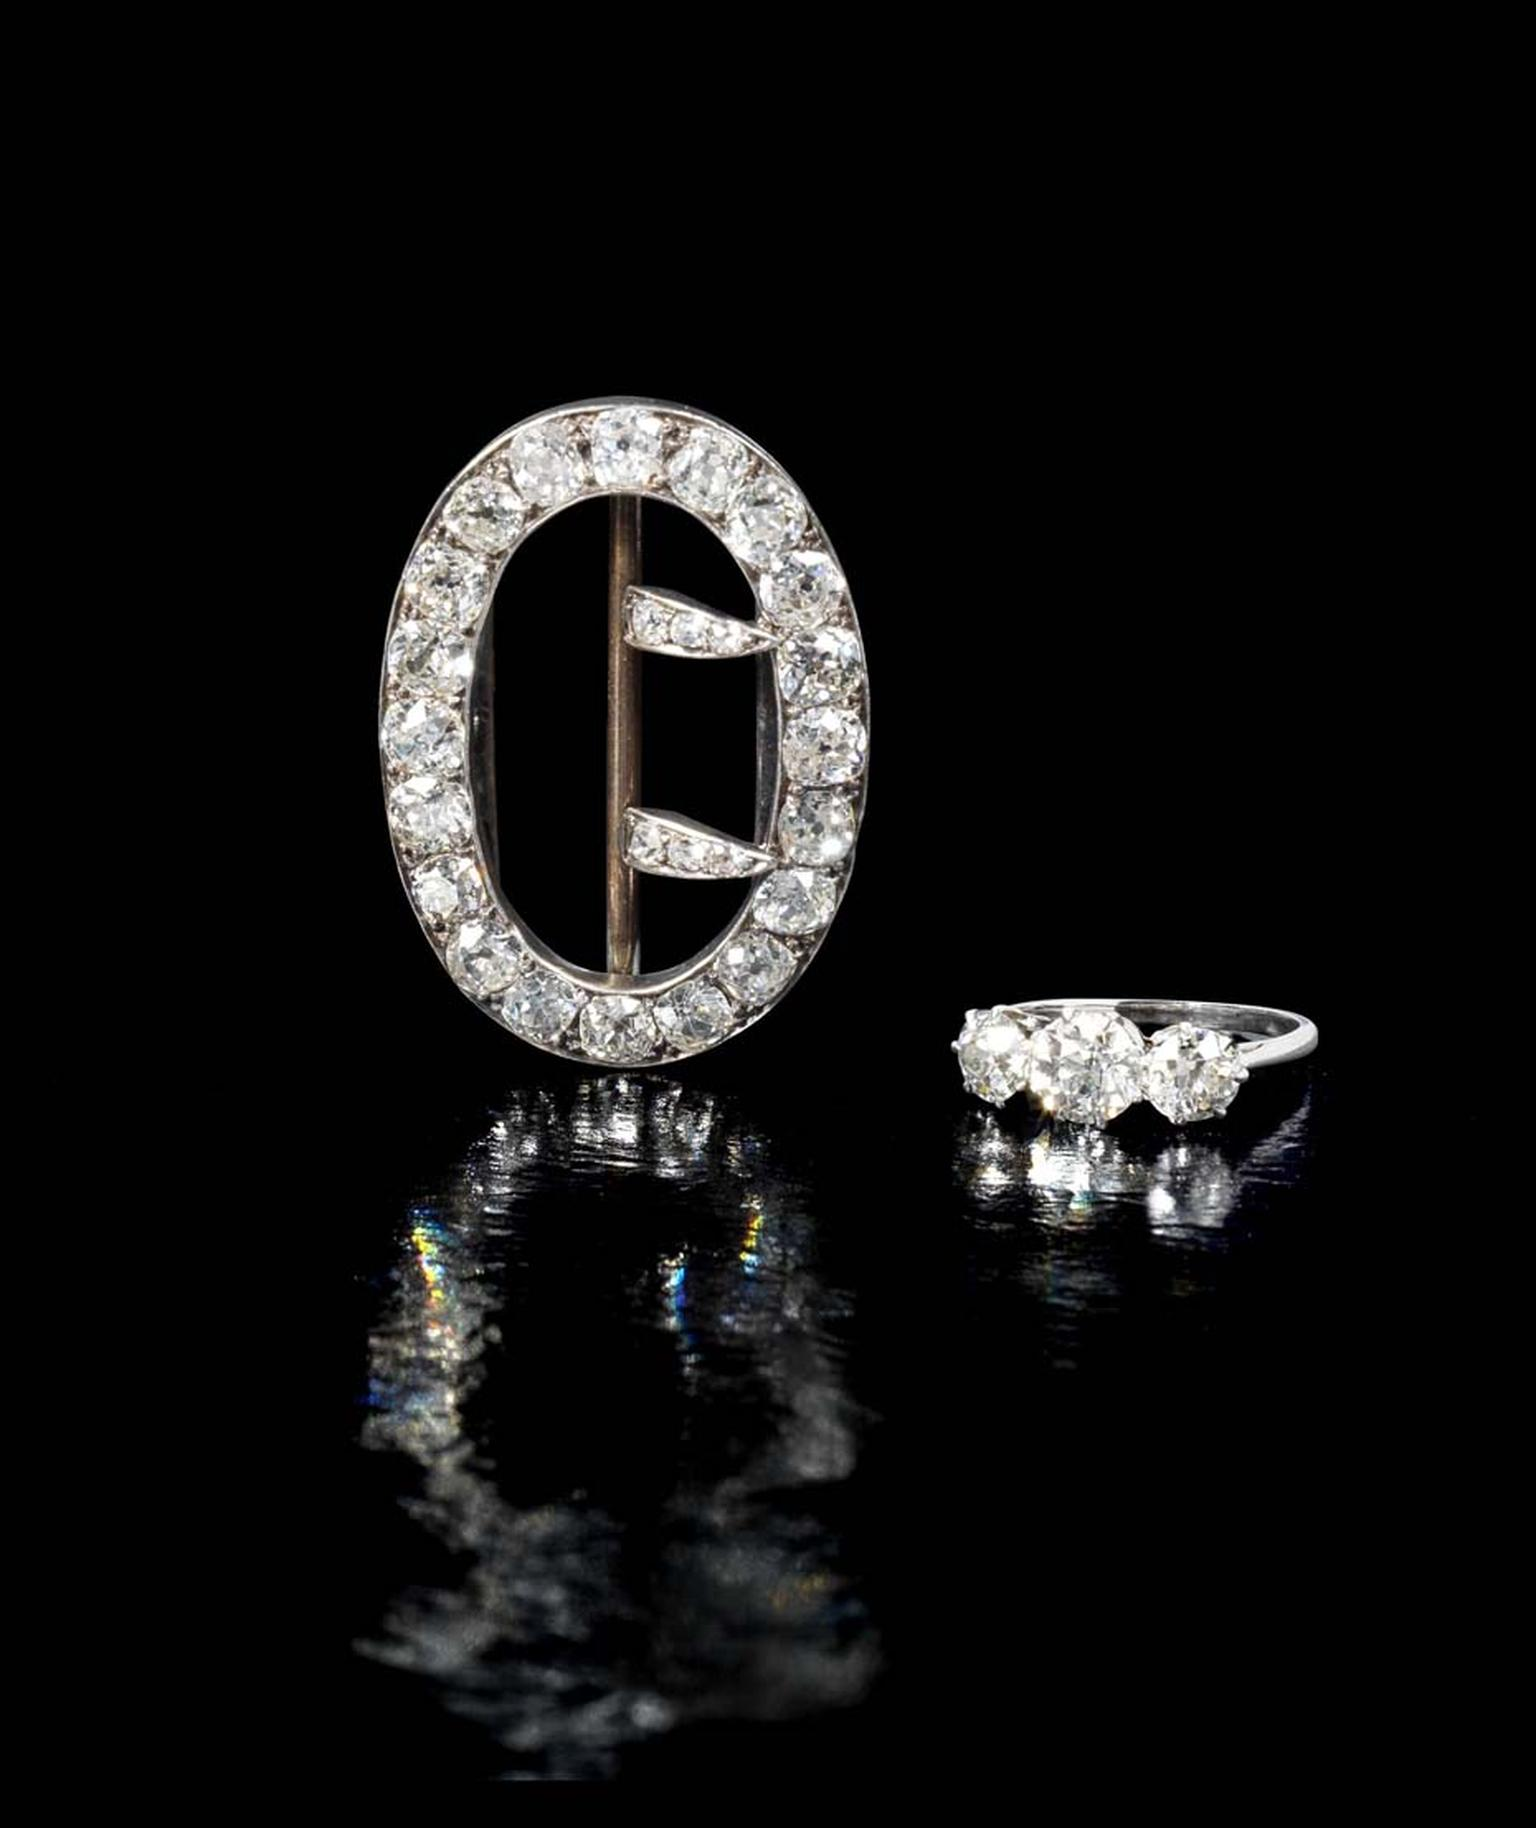 The contents of Agatha Christie's trunk, included a three stone brilliant-cut diamond ring and a diamond brooch in the shape of a buckle, will be auctioned by Bonhams London on 8 October 2014. Bids for the brooch will start at £6,000-8,000 and the ring at